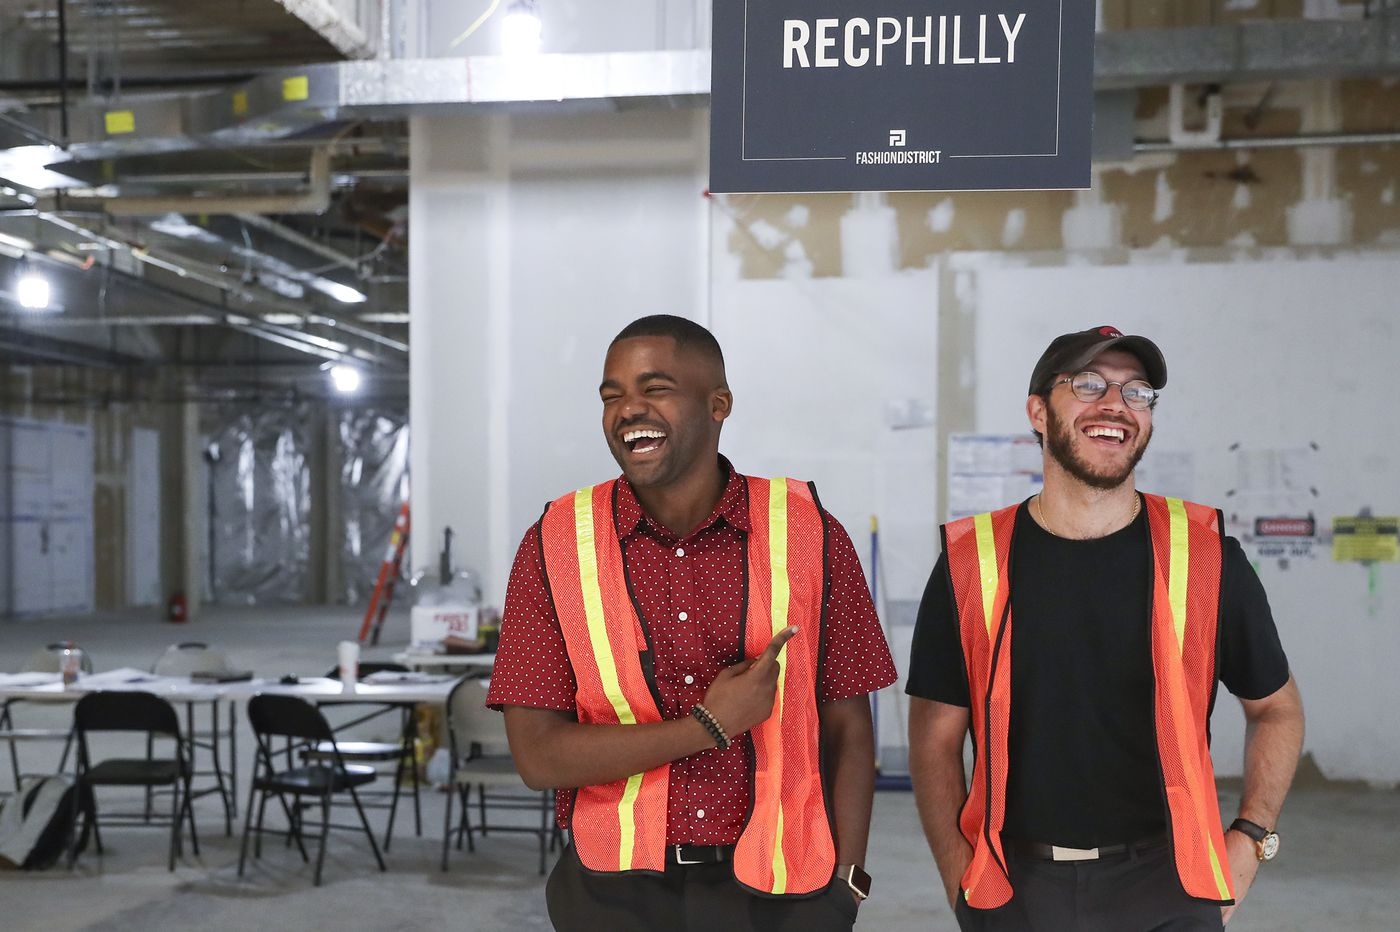 REC Philly, a coworking space for creatives, heralds new location in revamped Gallery